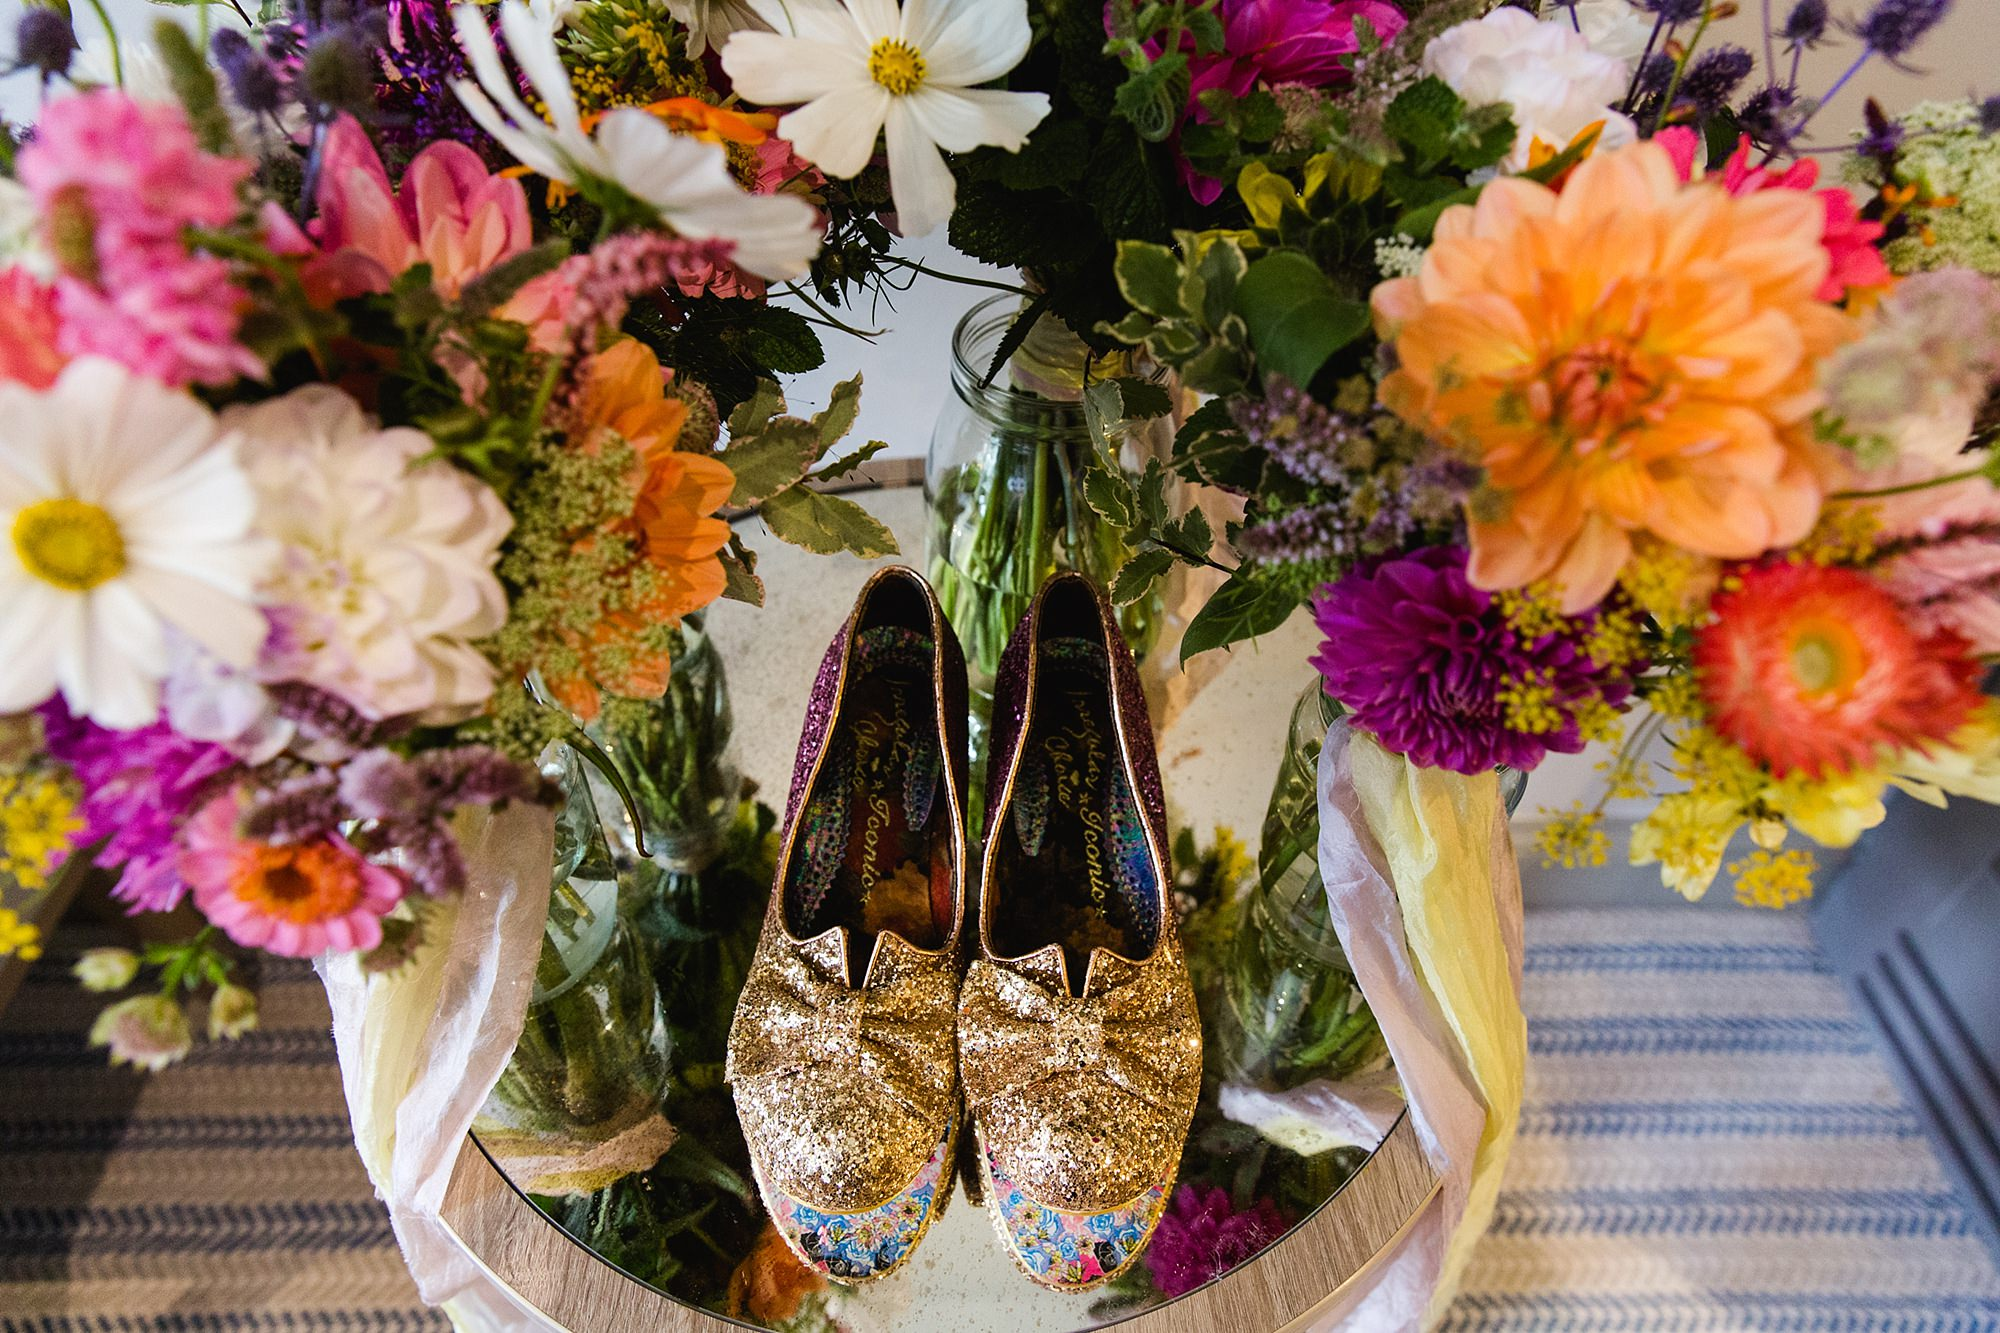 Woodland Weddings Tring bride's shoes with flowers